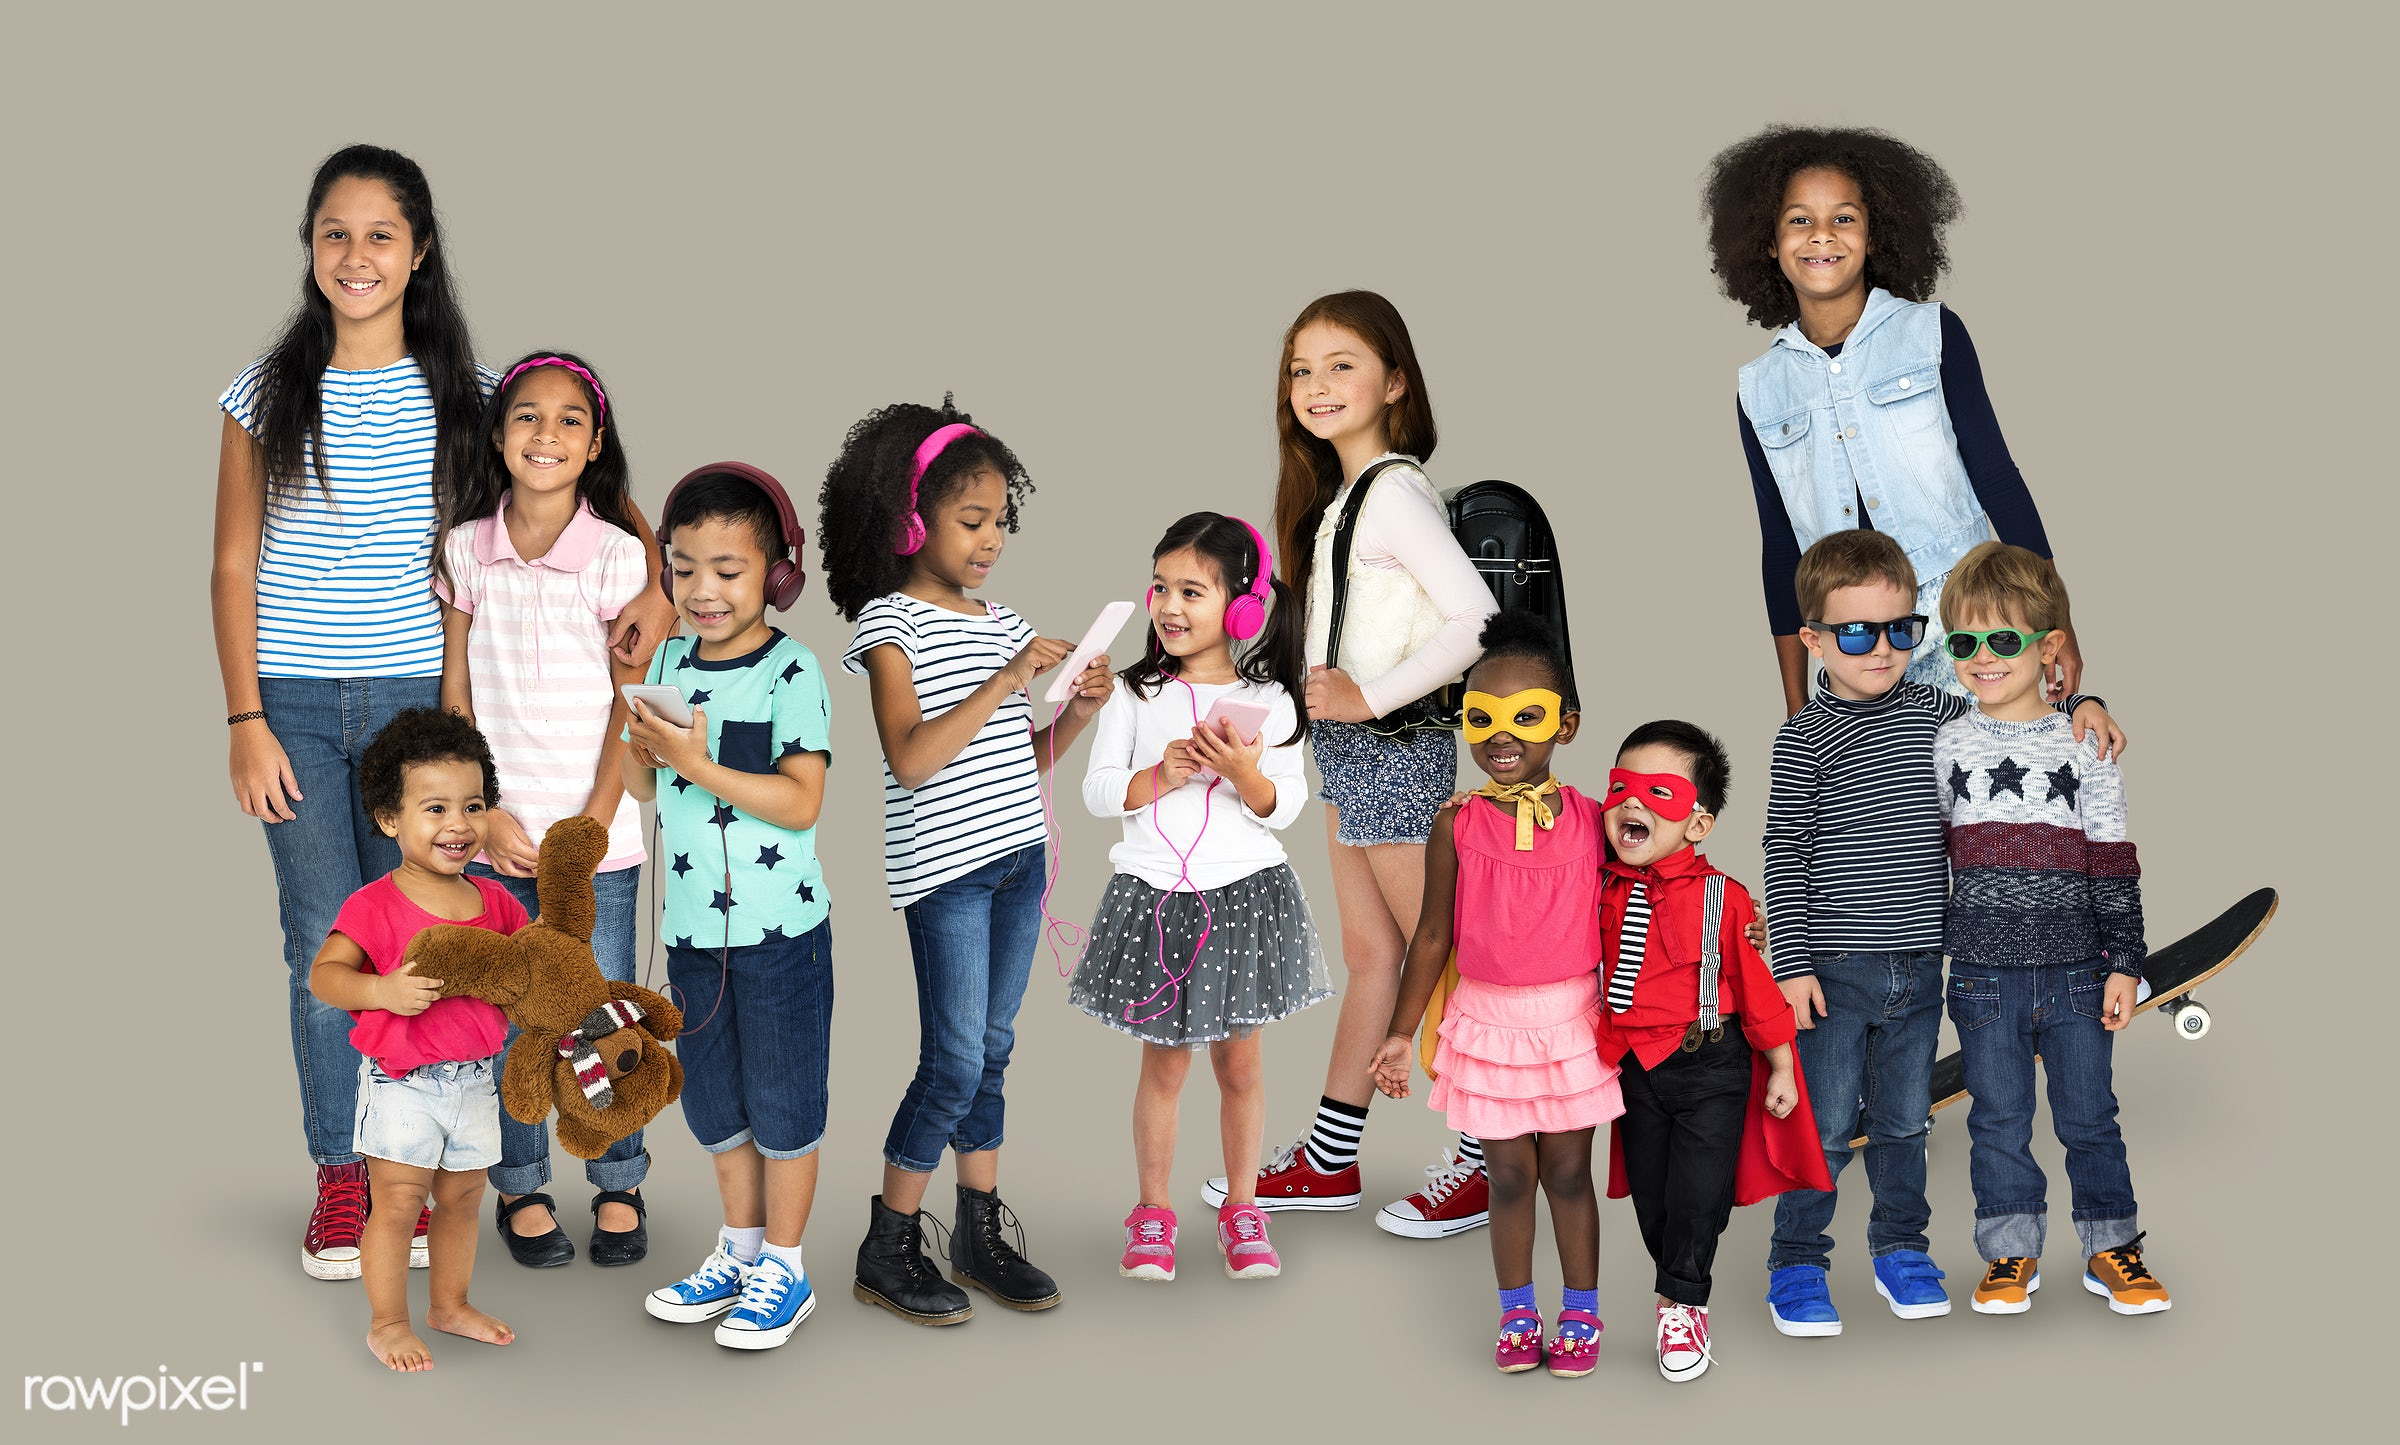 studio, person, diverse, innocent, little, recreation, people, asian, caucasian, little girls, teenager, lifestyle, studio...